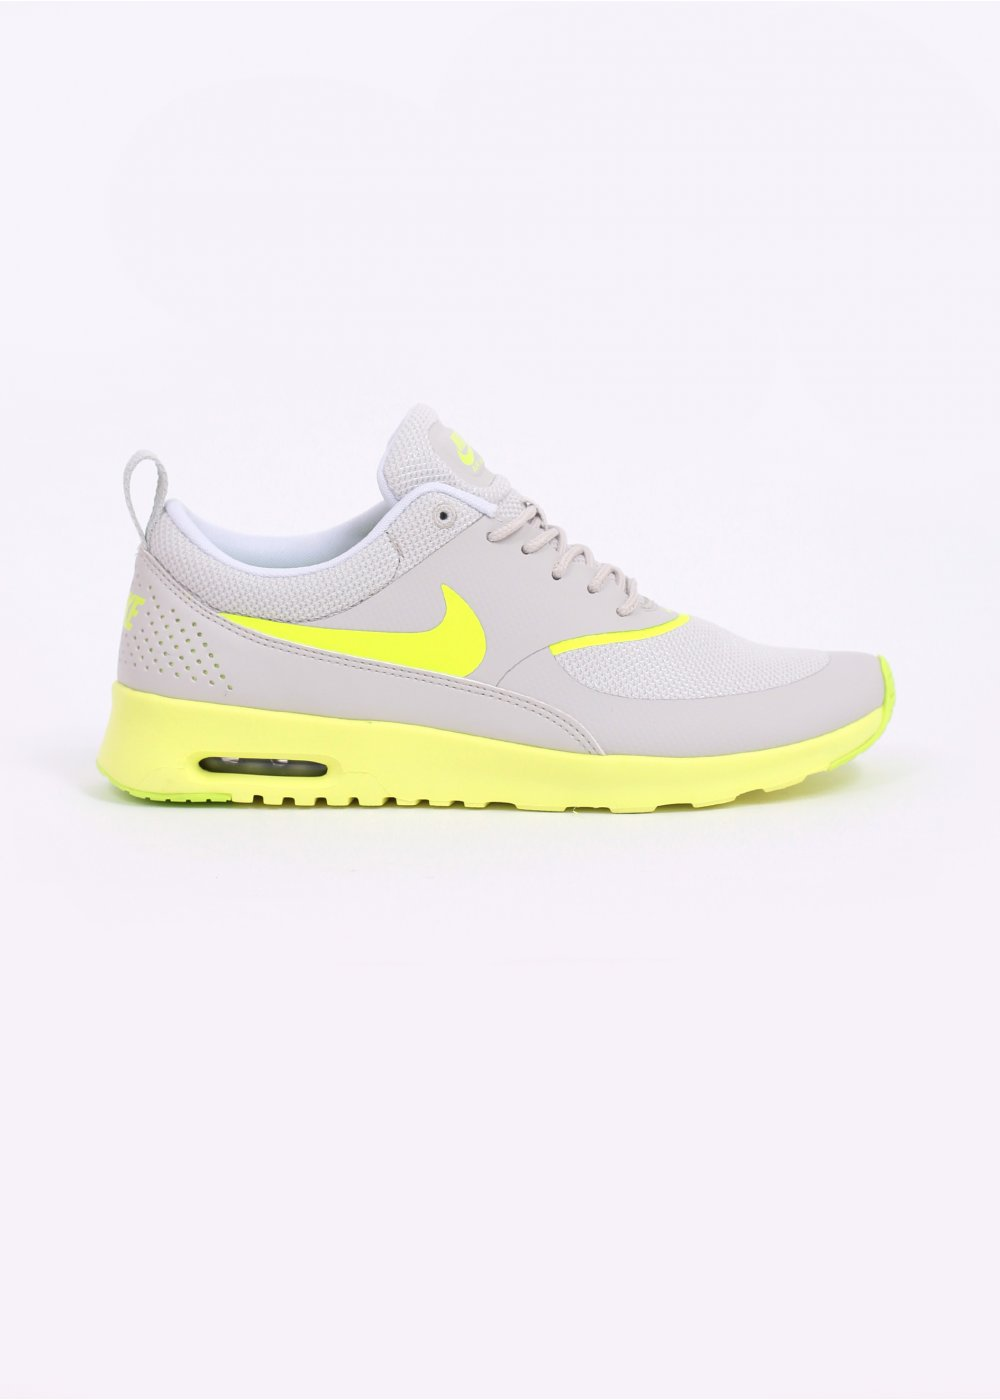 Air Max Thea Trainers - Grey / Yellow